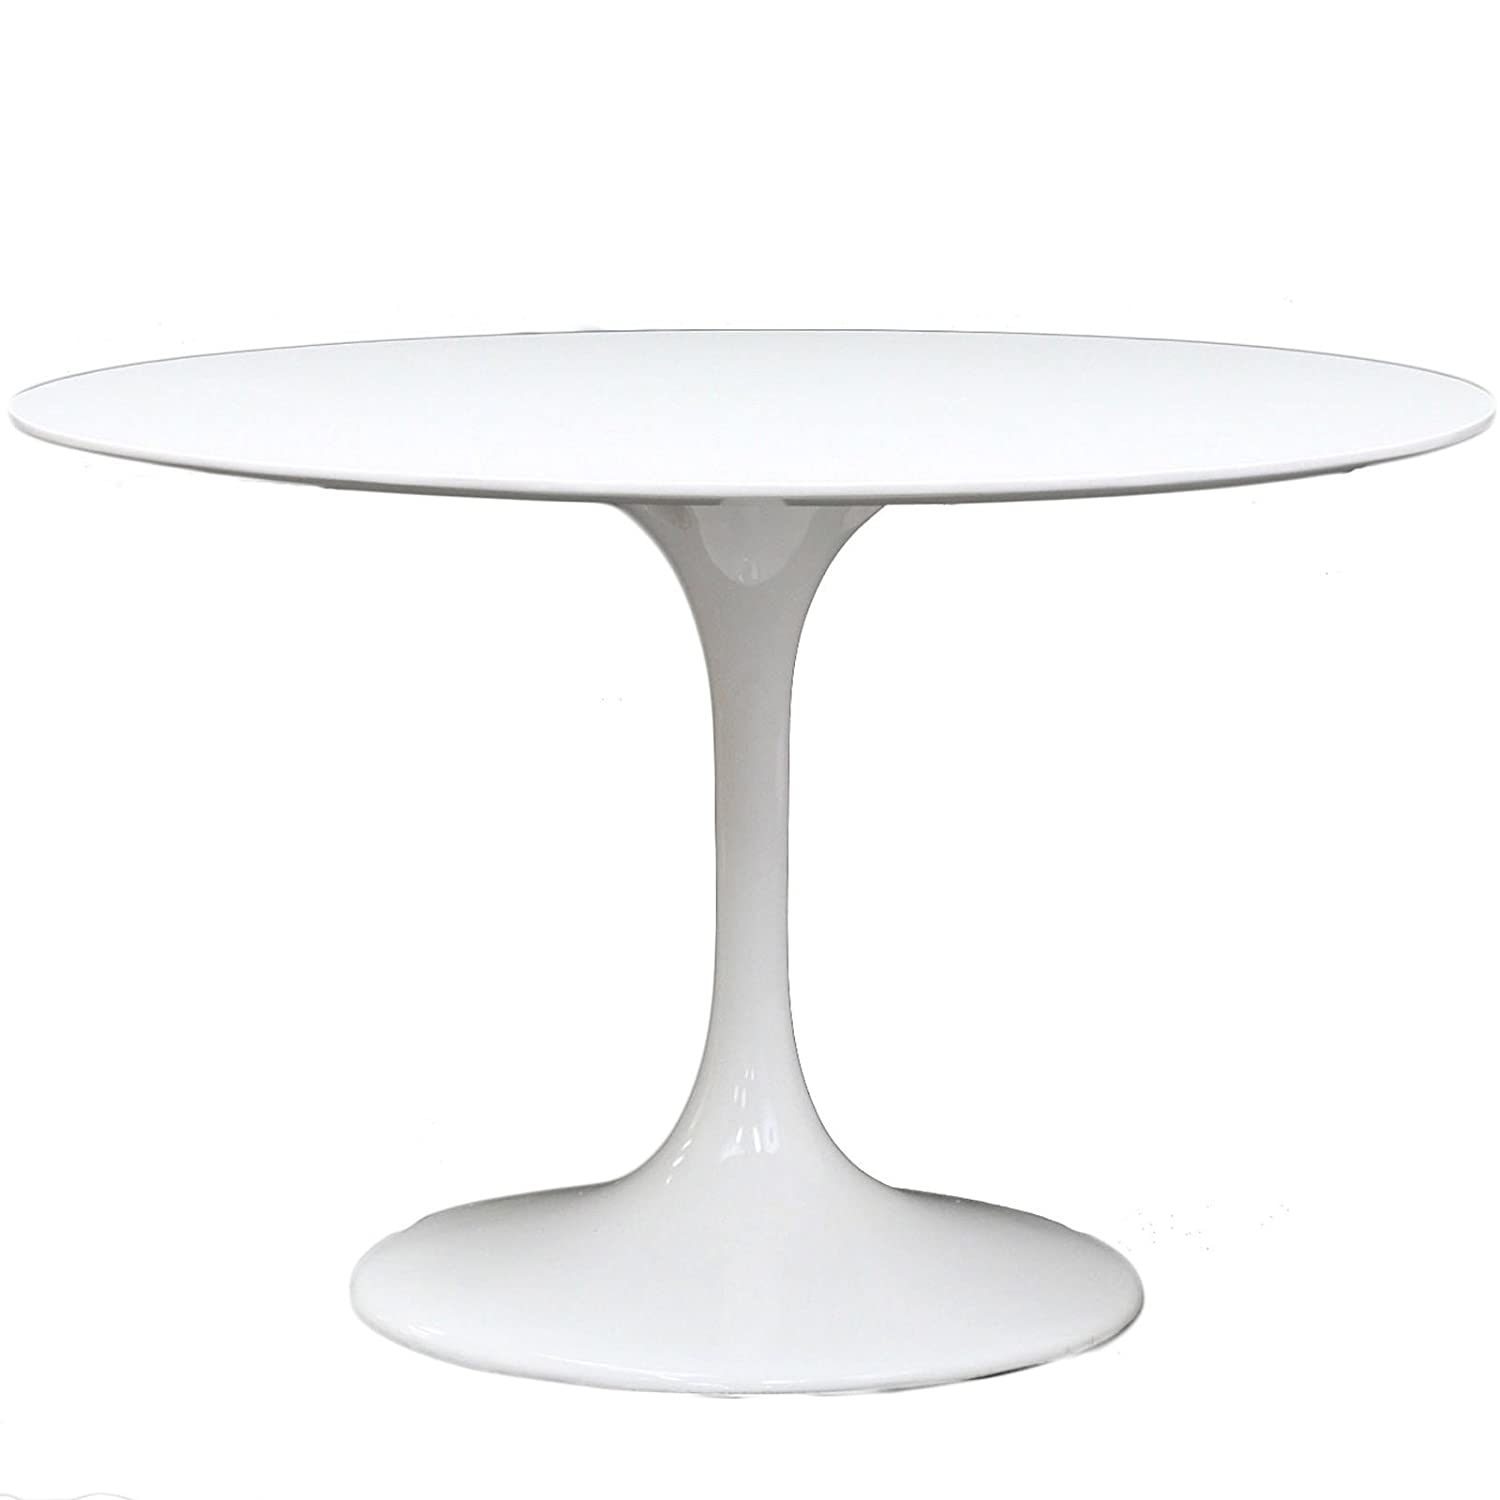 Amazoncom Modway Eero Saarinen Style Tulip Dining Table - Oval tulip table reproduction